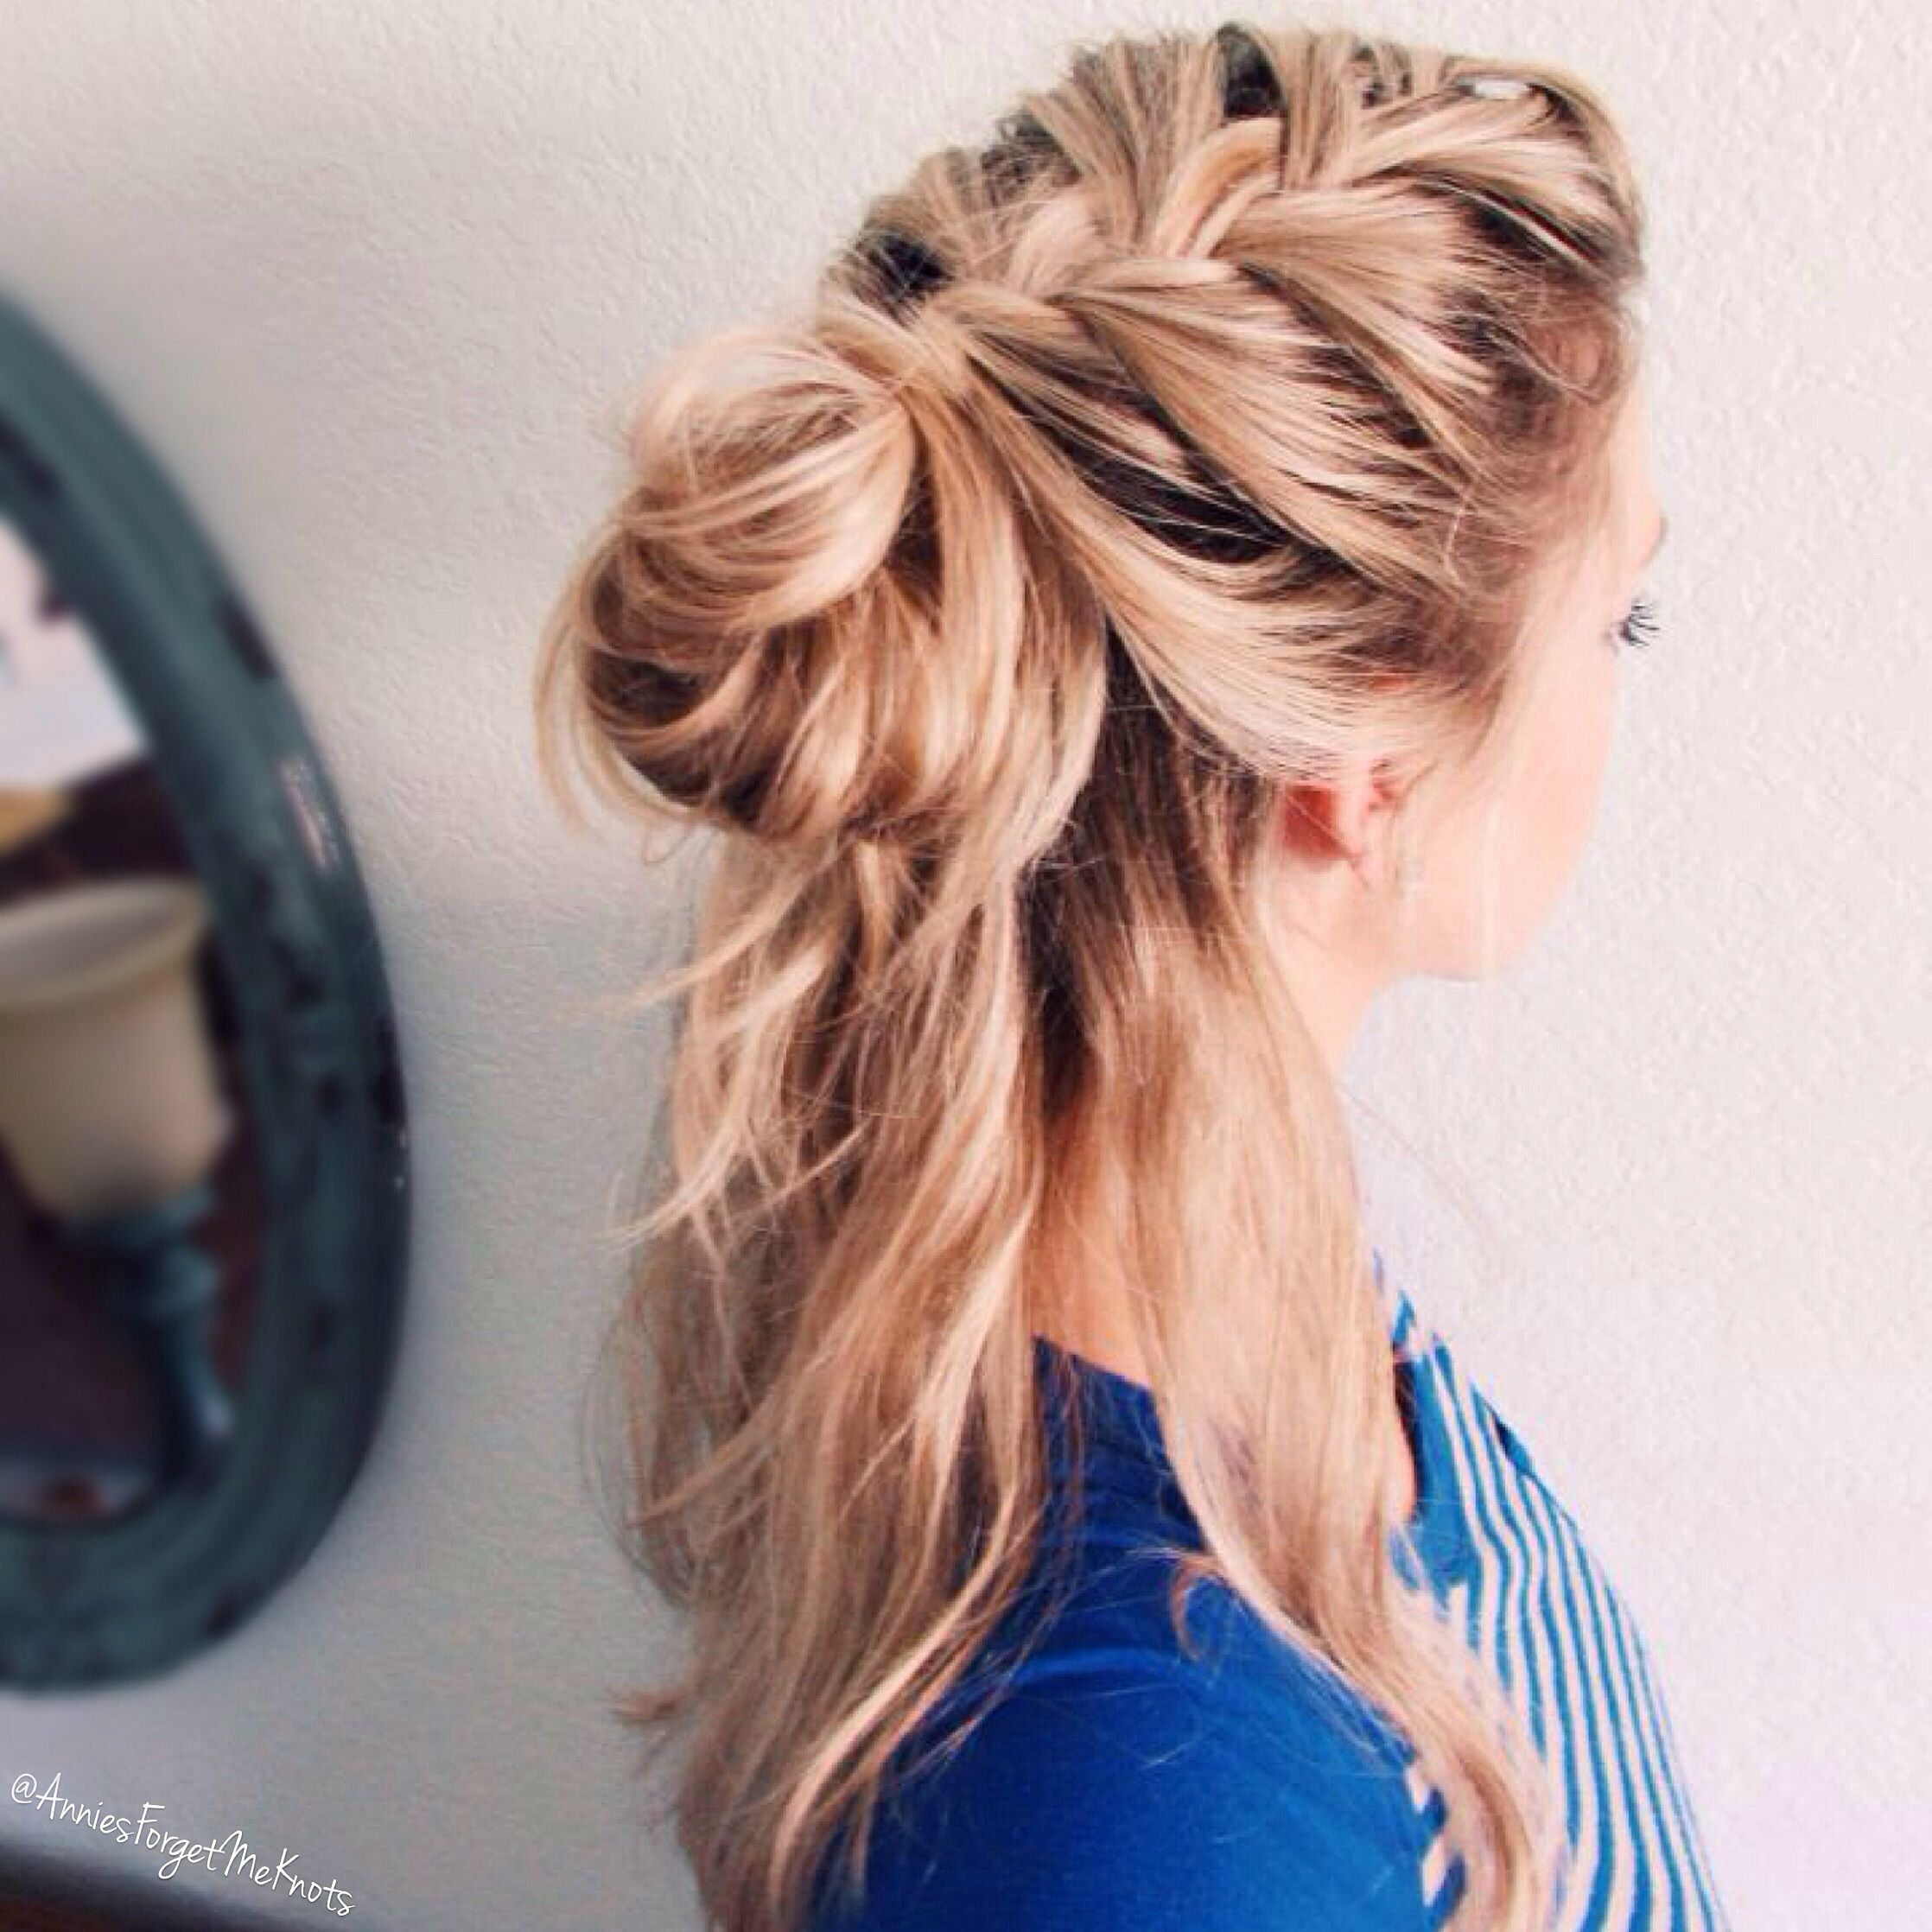 Dutch Braid Space Buns  Hair Pop  Hair Extensions  Hairpop   Natural Hair Style Braids  Pinterest  Follow Me, Braid Buns And Bun Hair